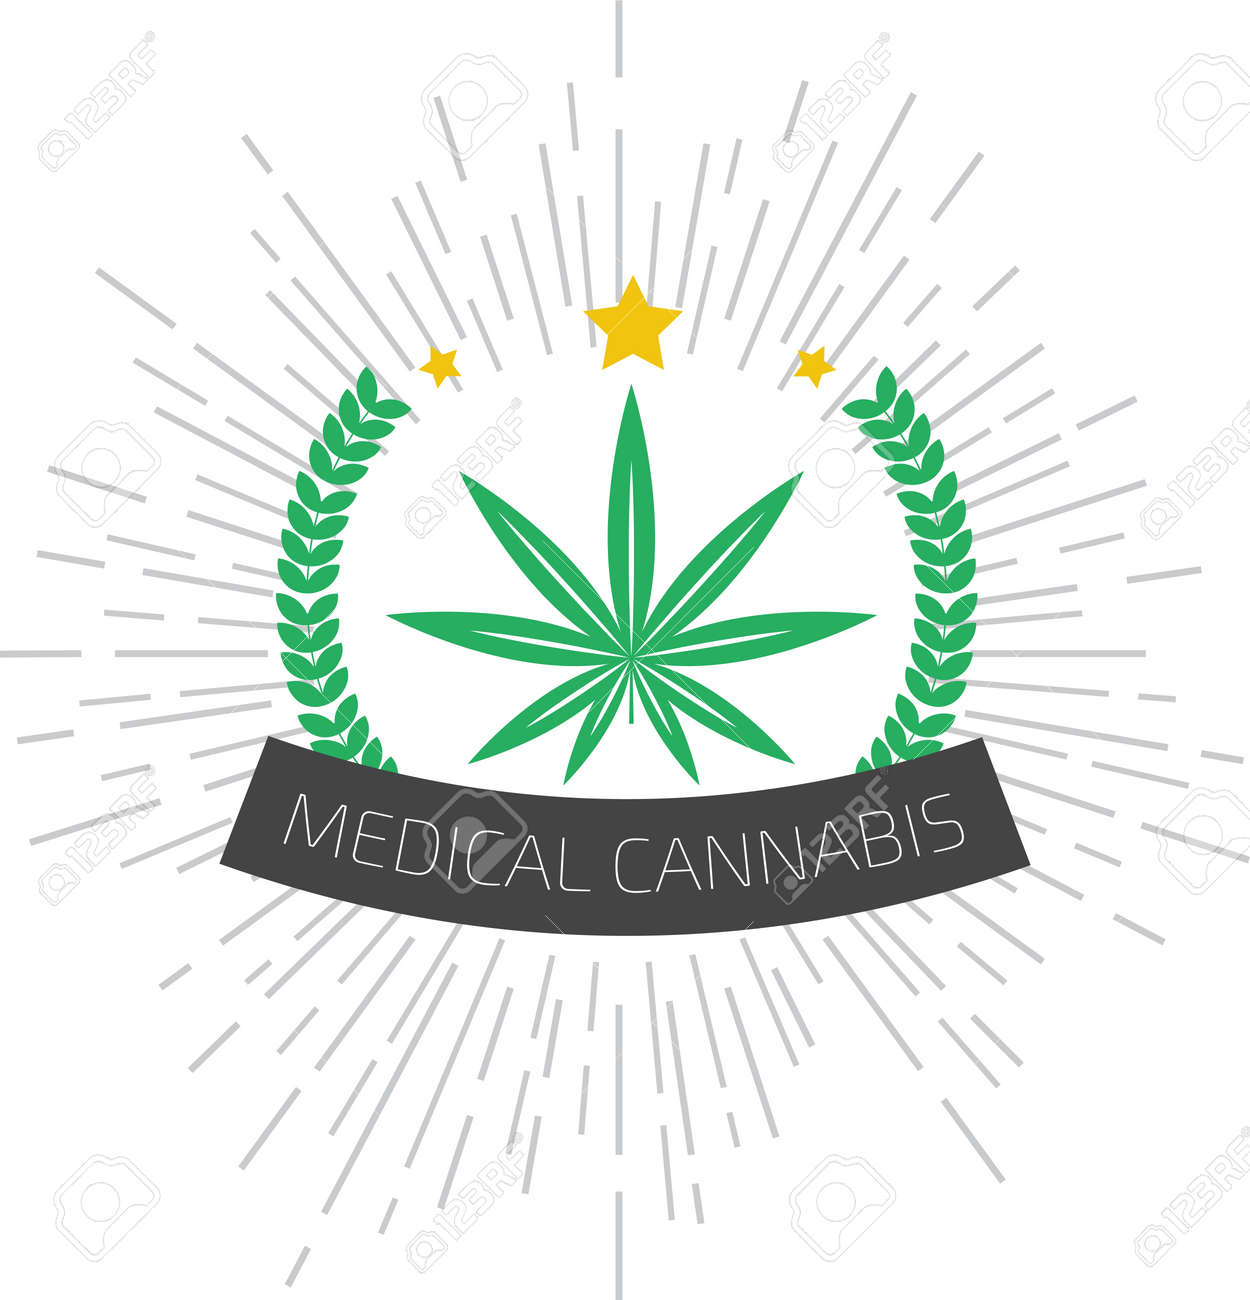 422 medical manufacturing cliparts stock vector and royalty medical manufacturing medical cannabis logo medical marijuana logo medical marijuana label illustration